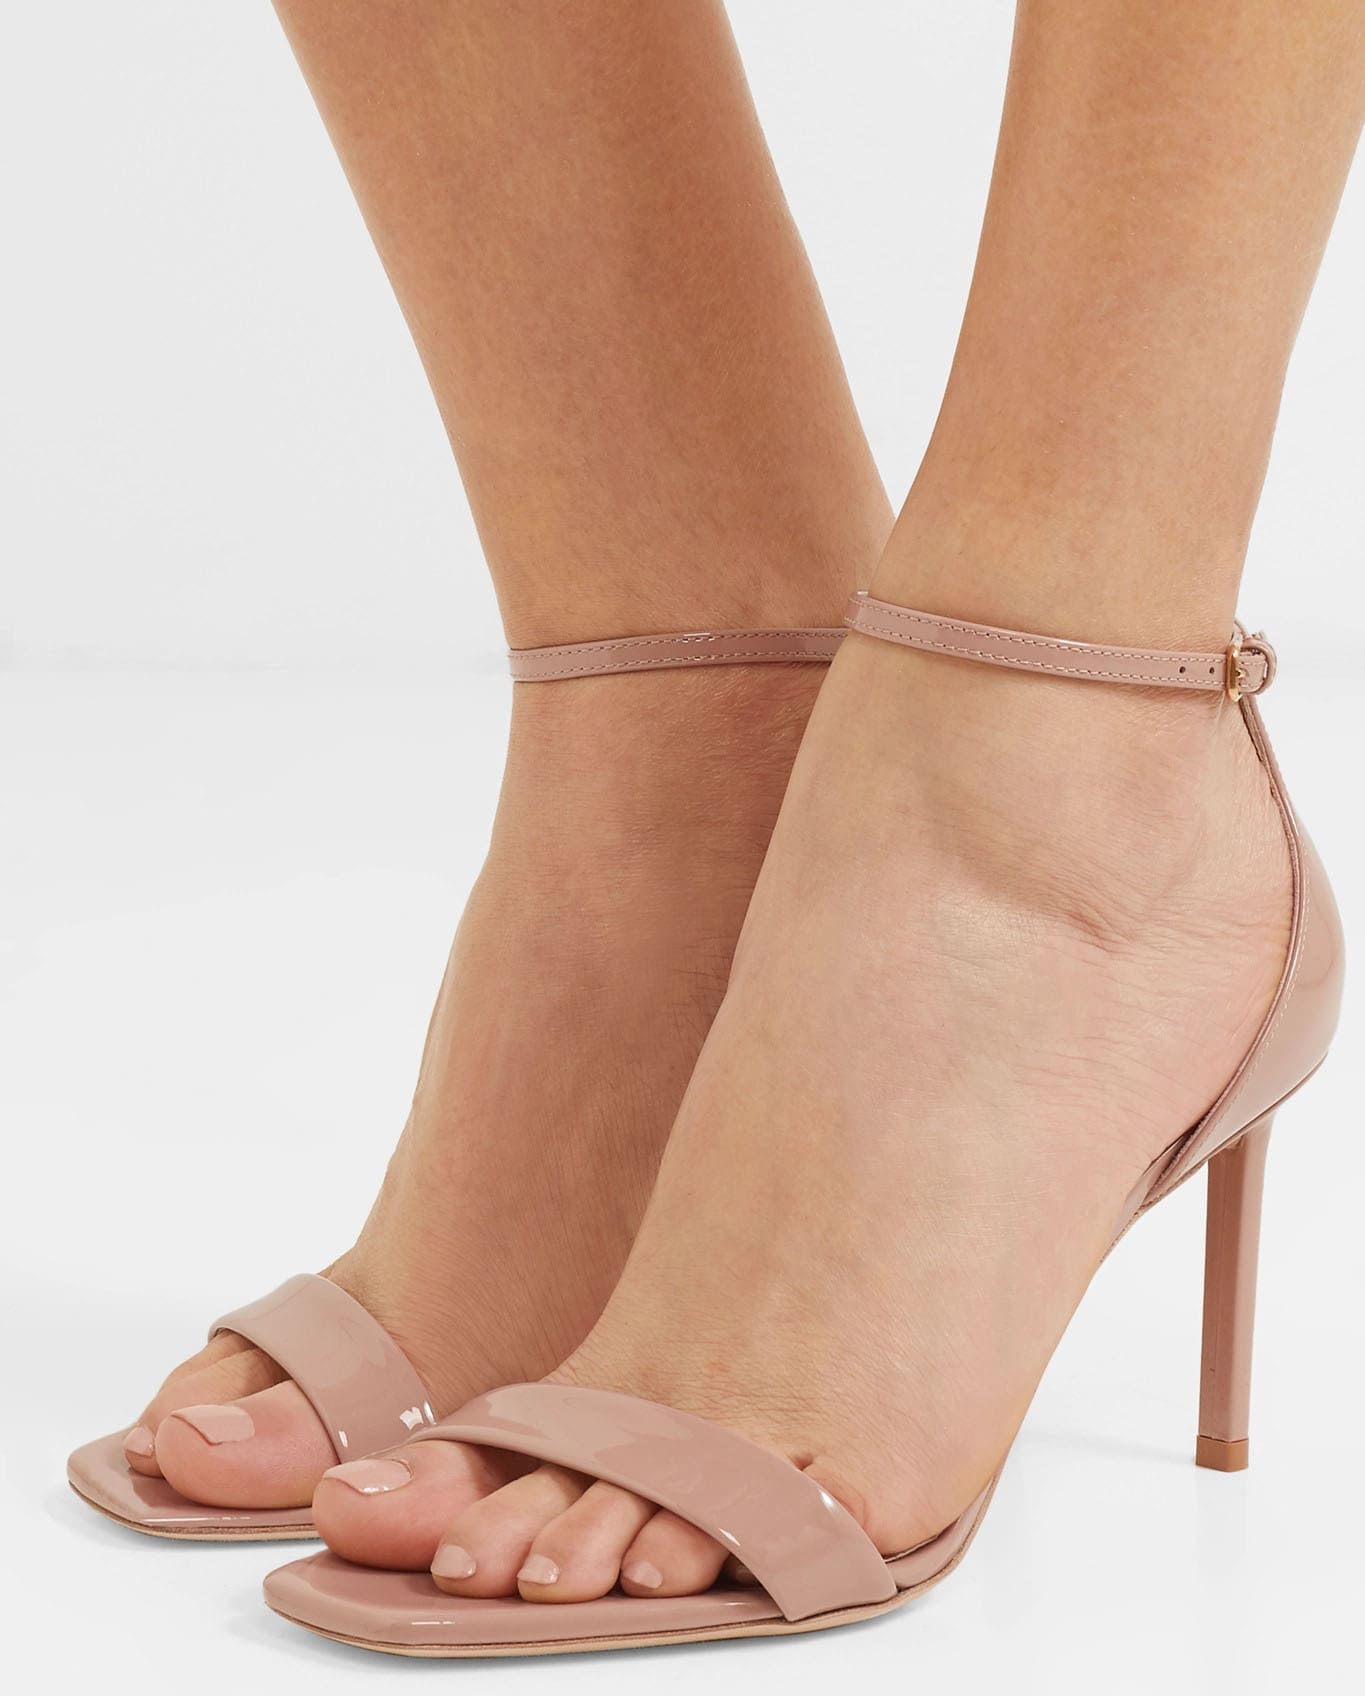 The Amber sandal features a delicate ankle strap and a square toe to keep your toes inside the shoe